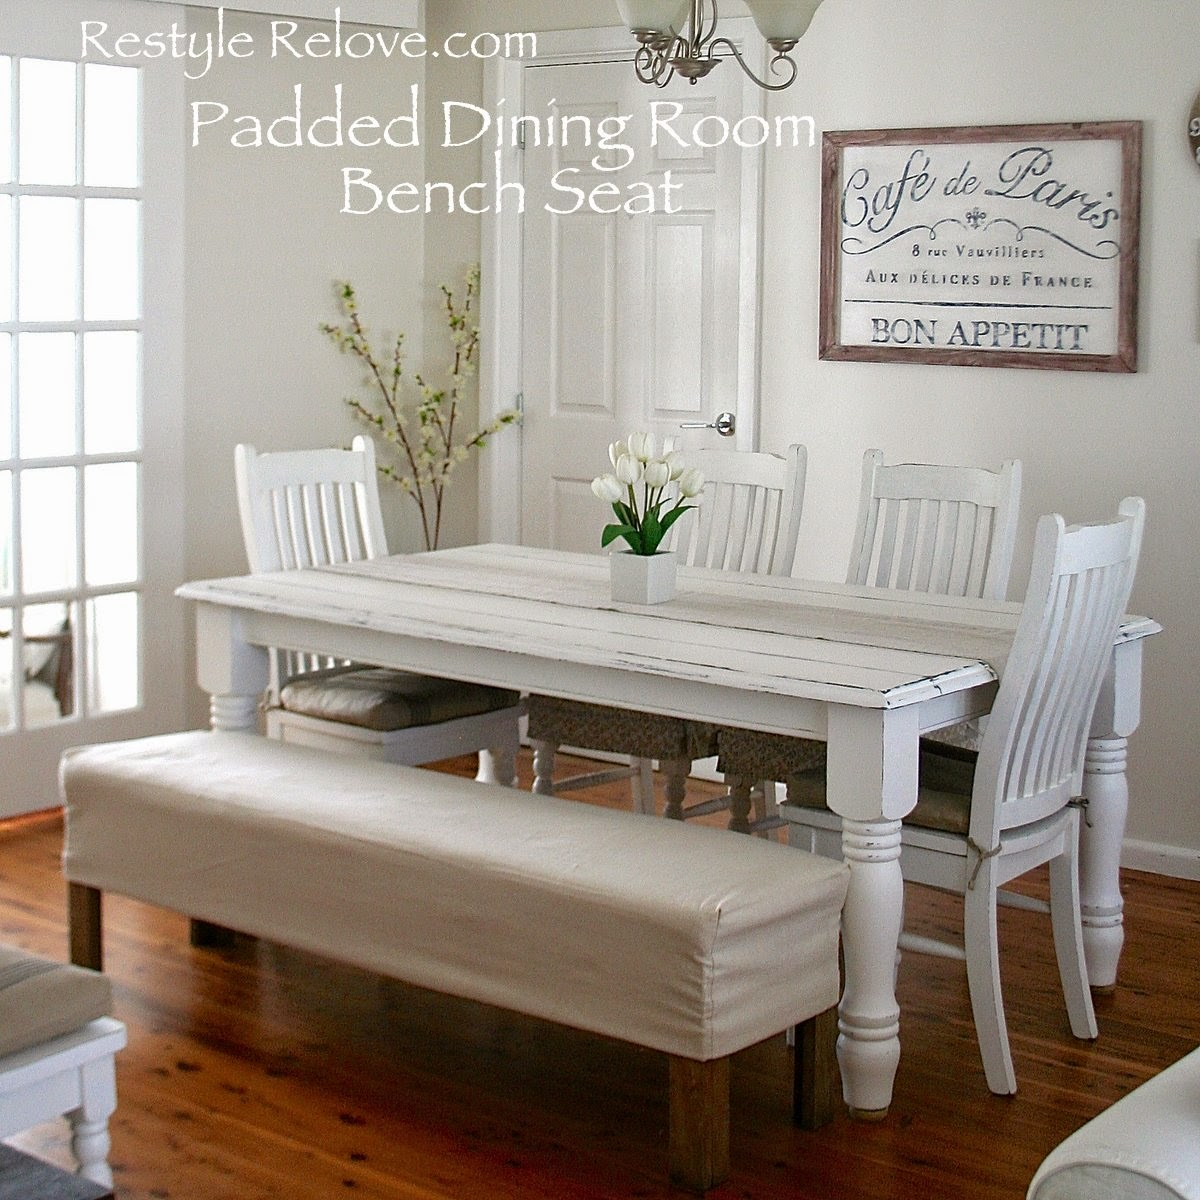 Bench Dining Room Table Set Padded Dining Room Bench Seat With Removable Washable Drop